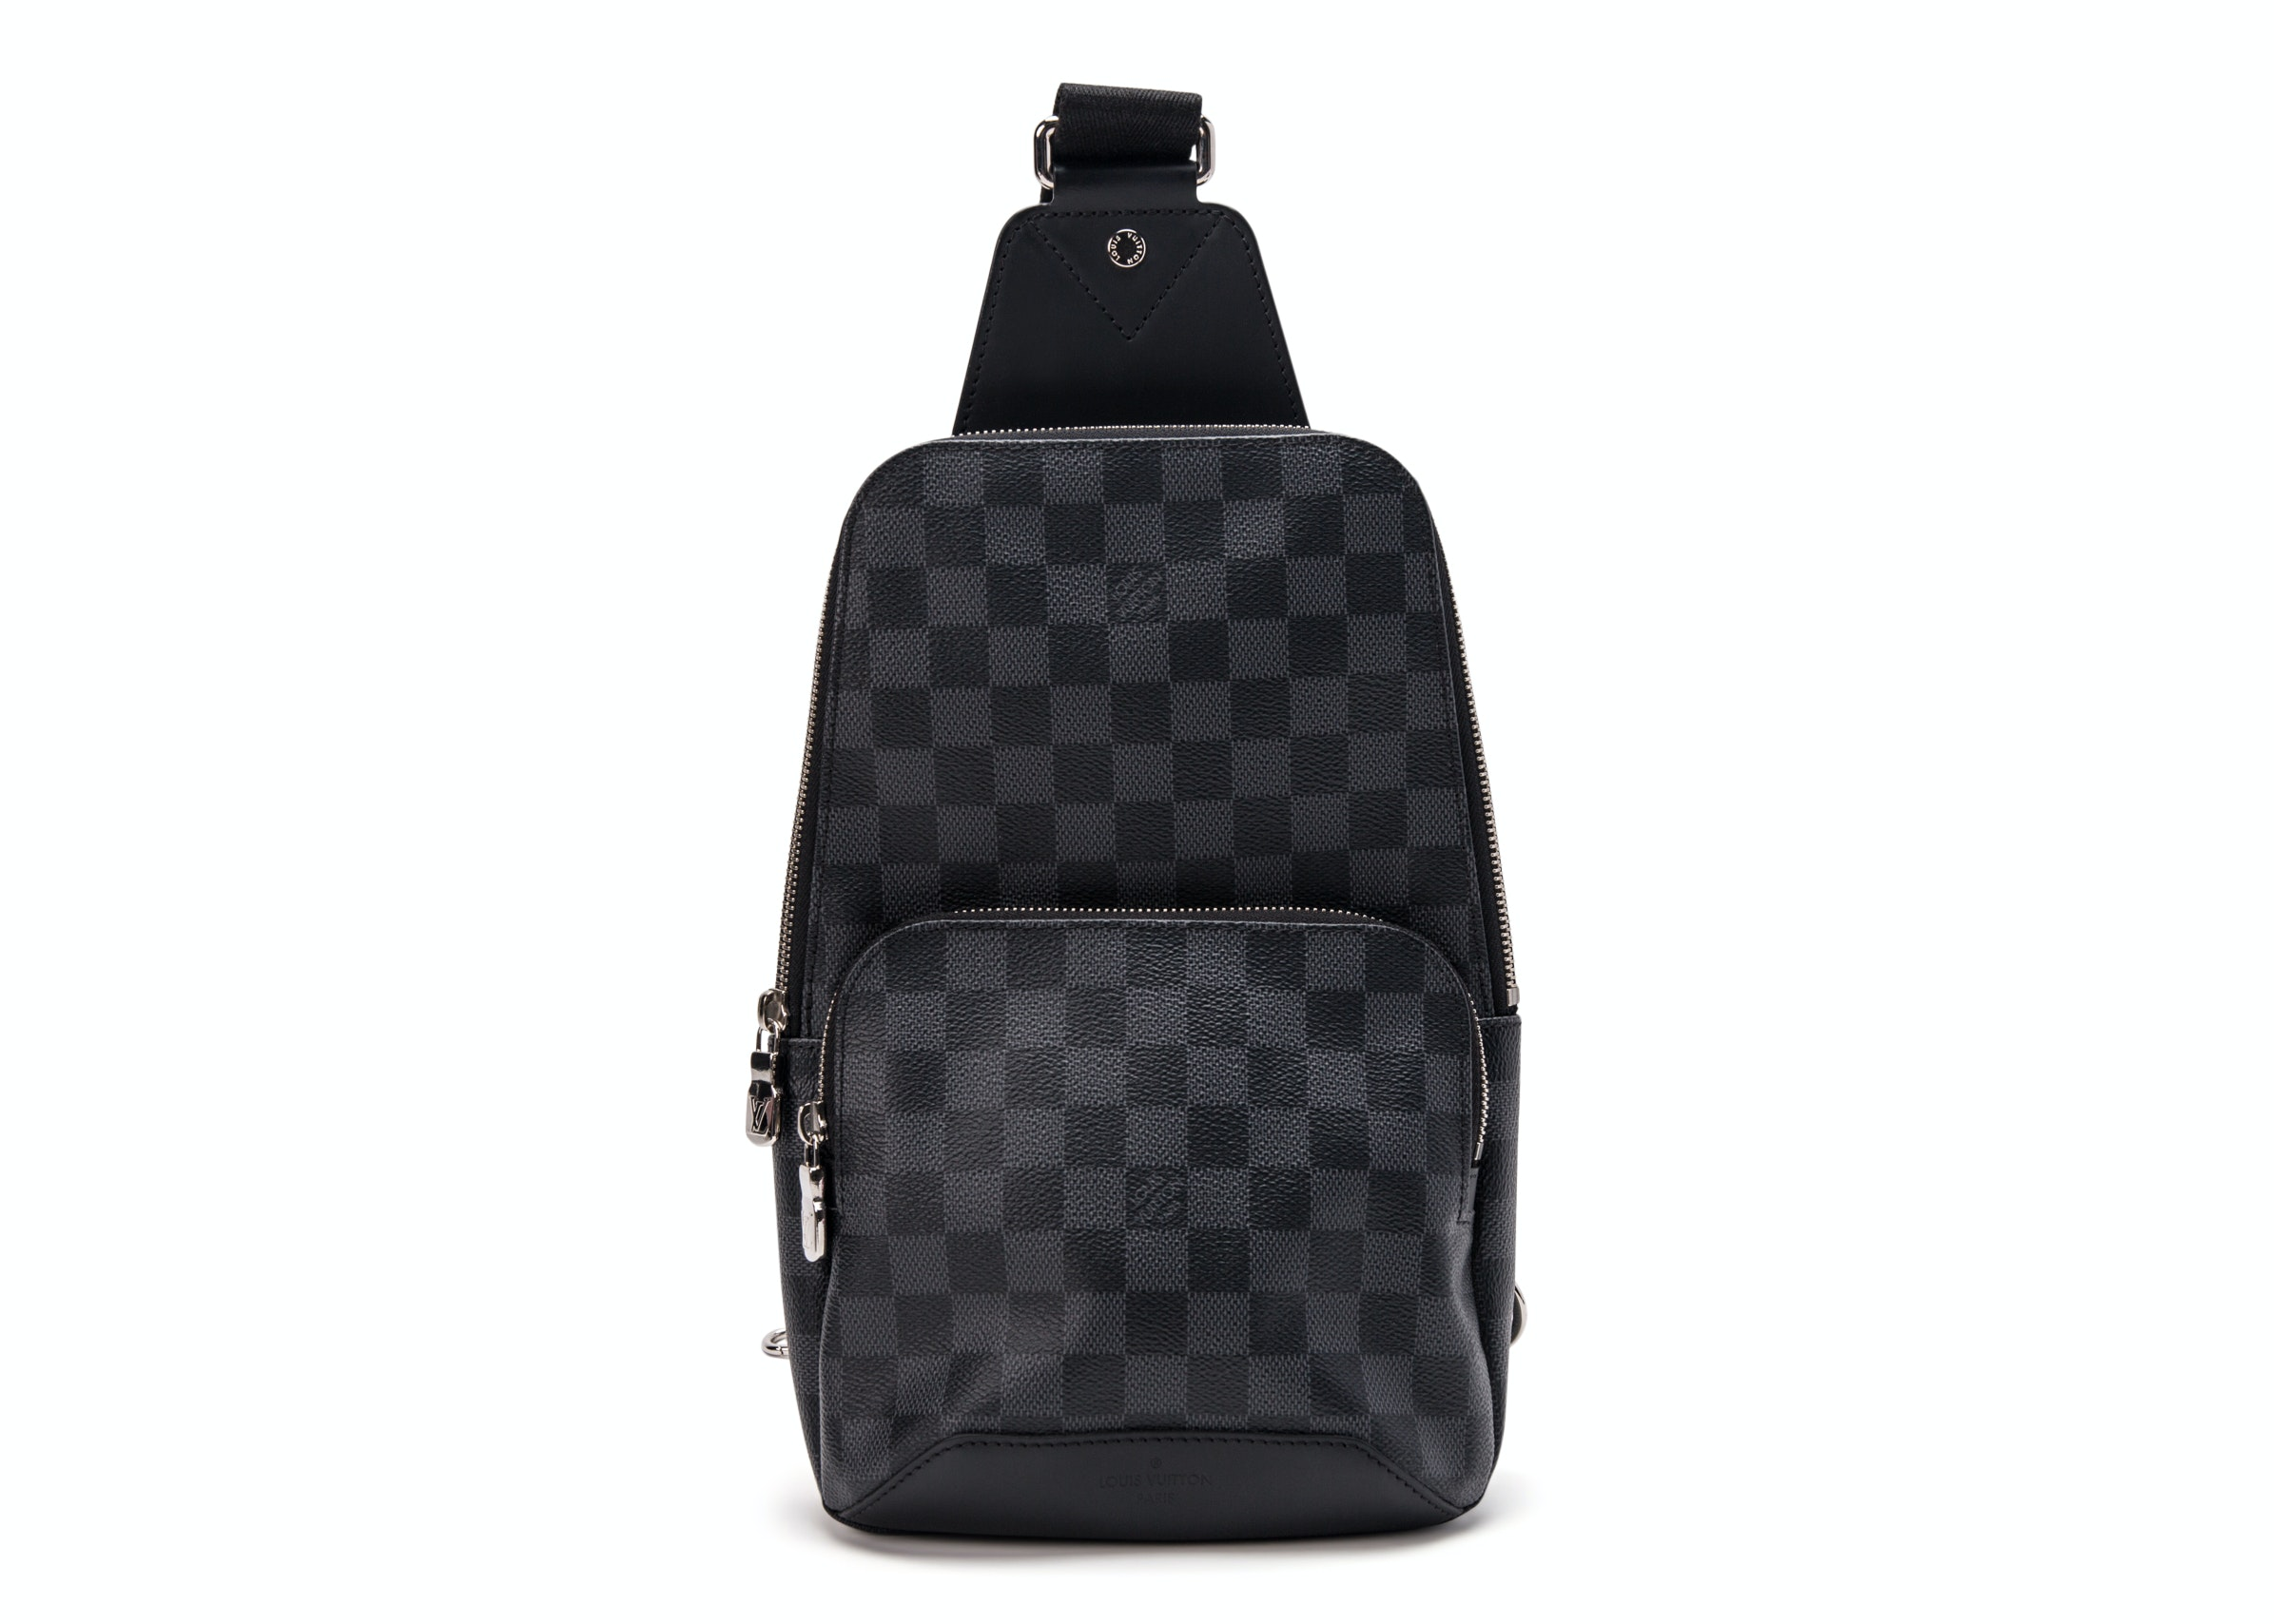 Louis Vuitton Backpack Avenue Sling Damier Graphite Black/Gray